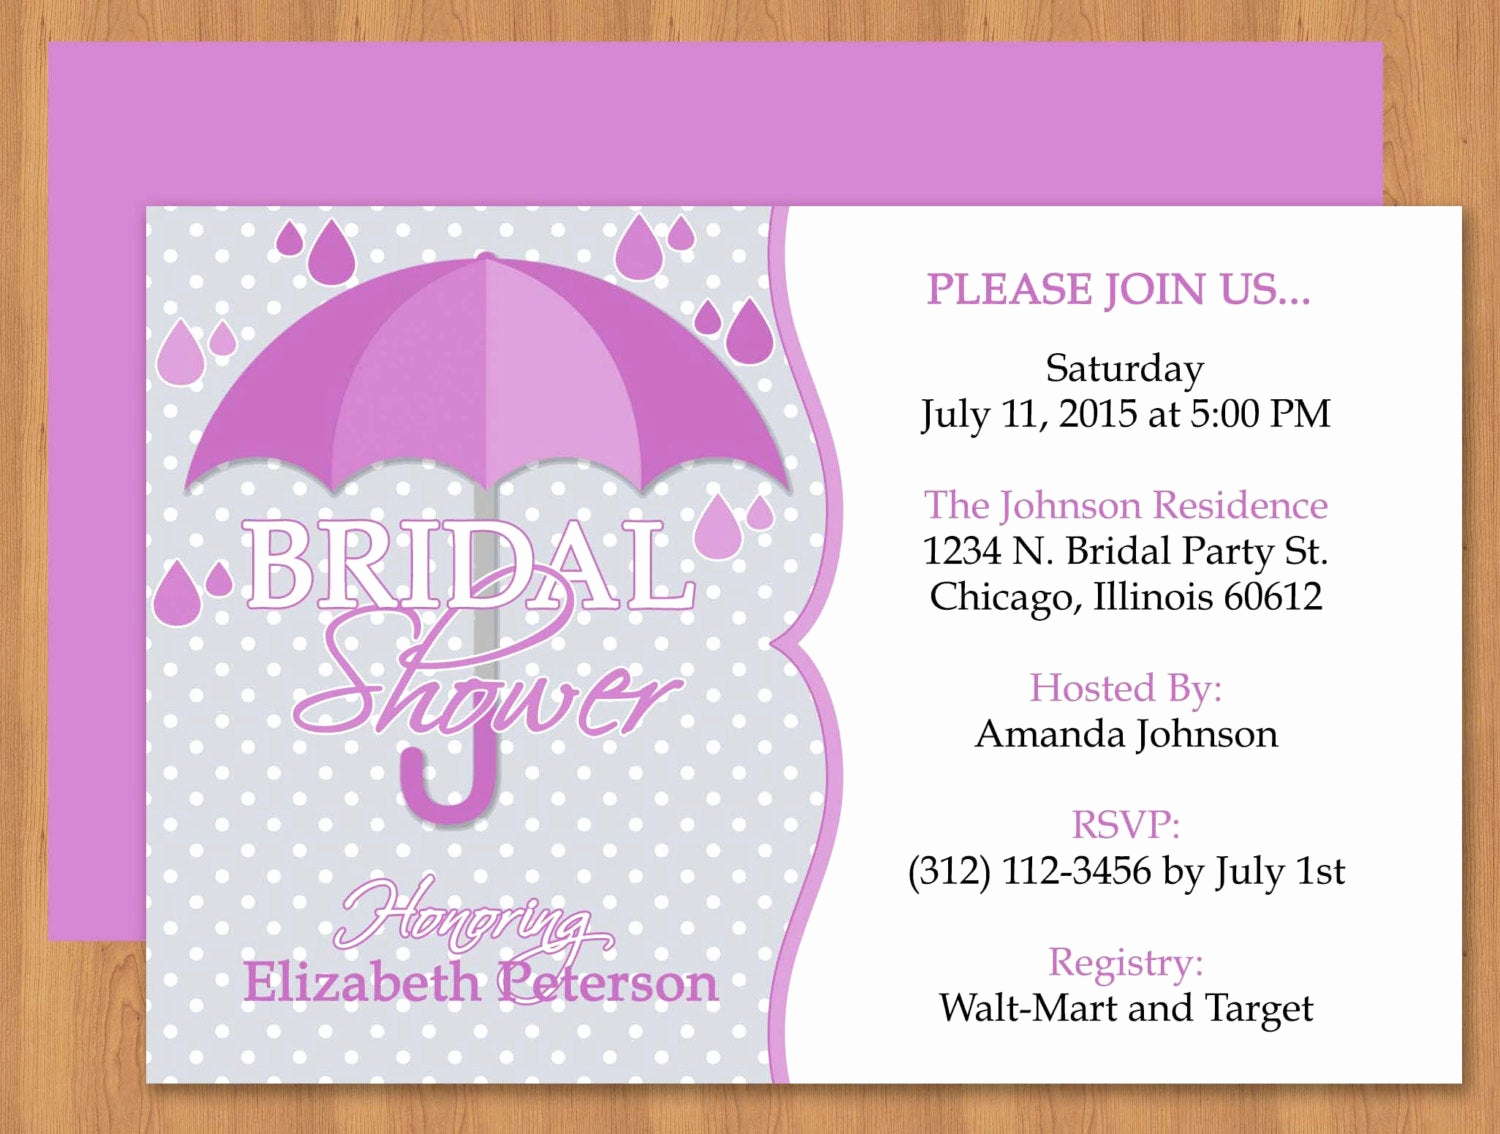 Wedding Shower Invitation Templates Elegant Purple Umbrella Bridal Shower Invitation Editable Template